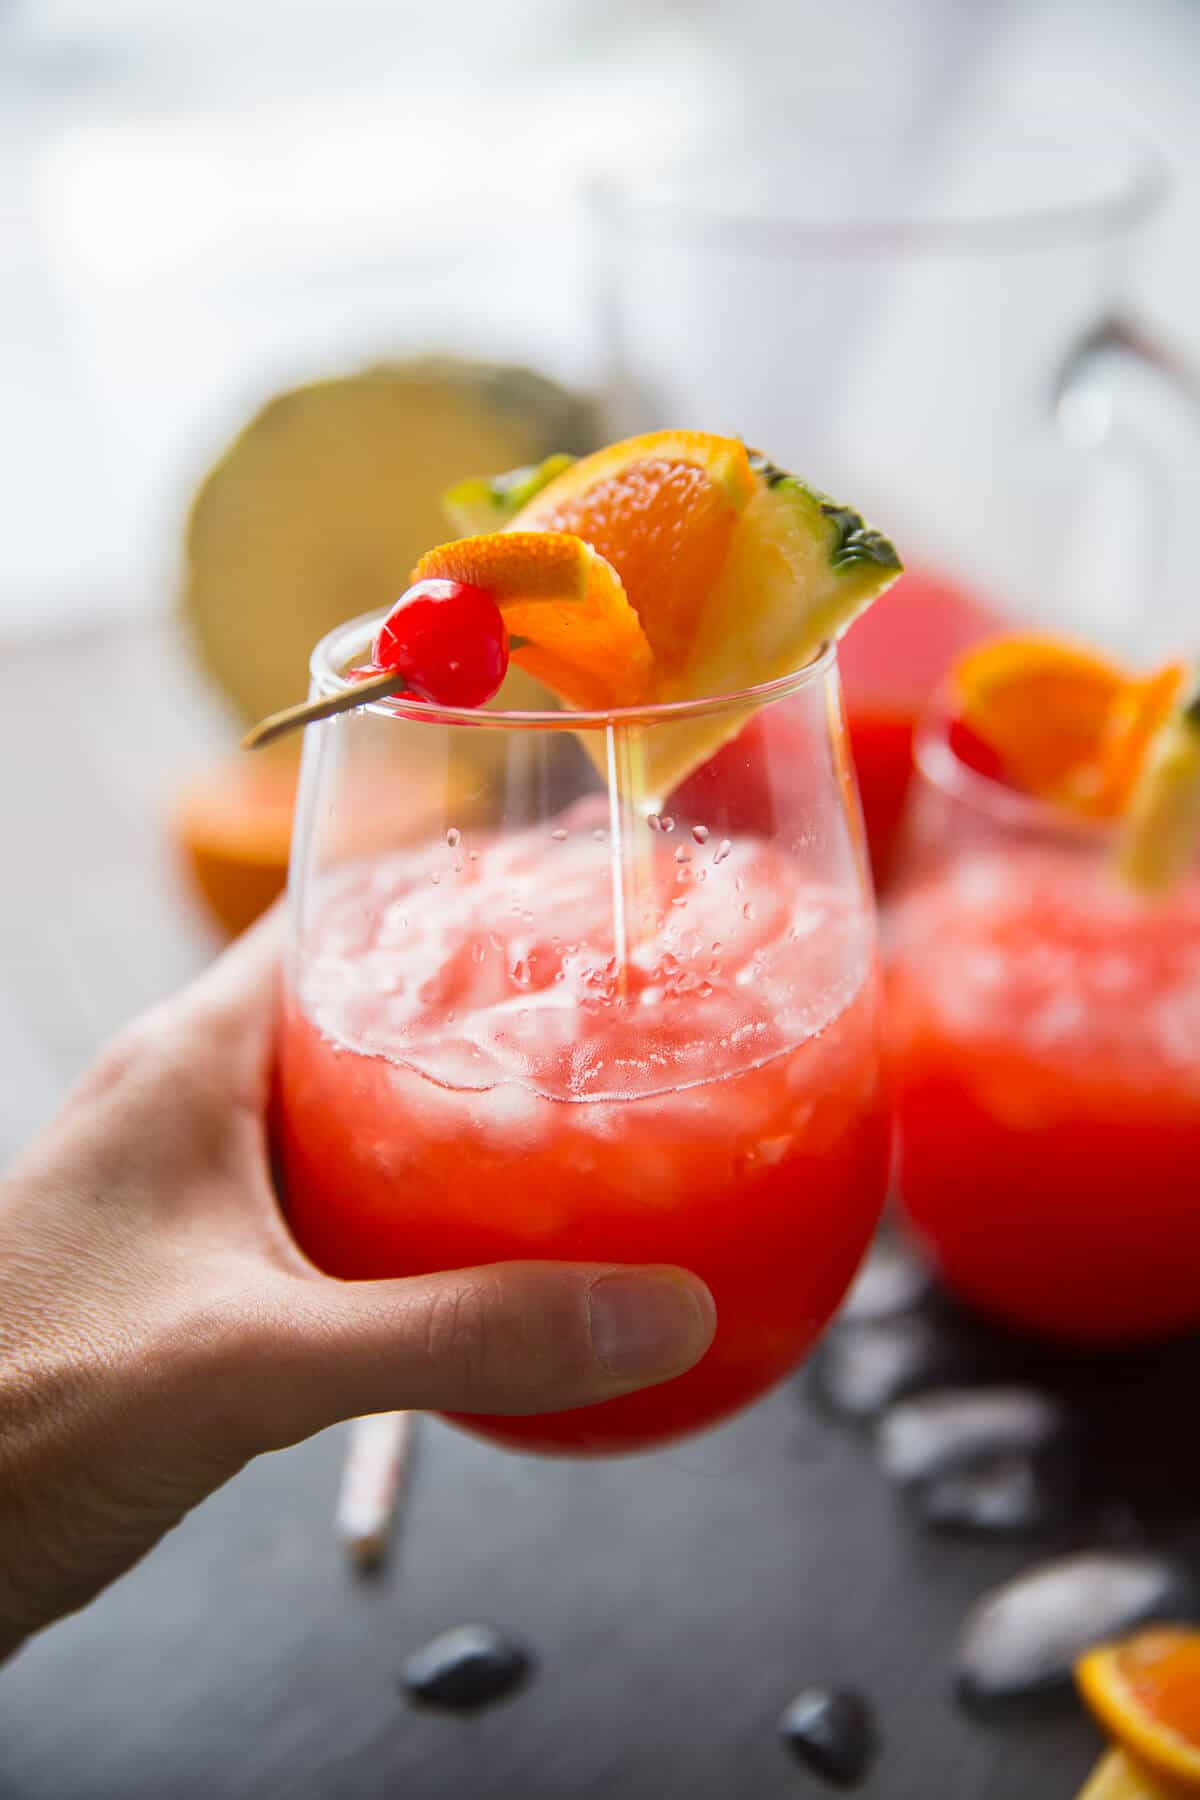 A rum punch recipe that is sure to be a hit at parties! Make an extra large pitcher!